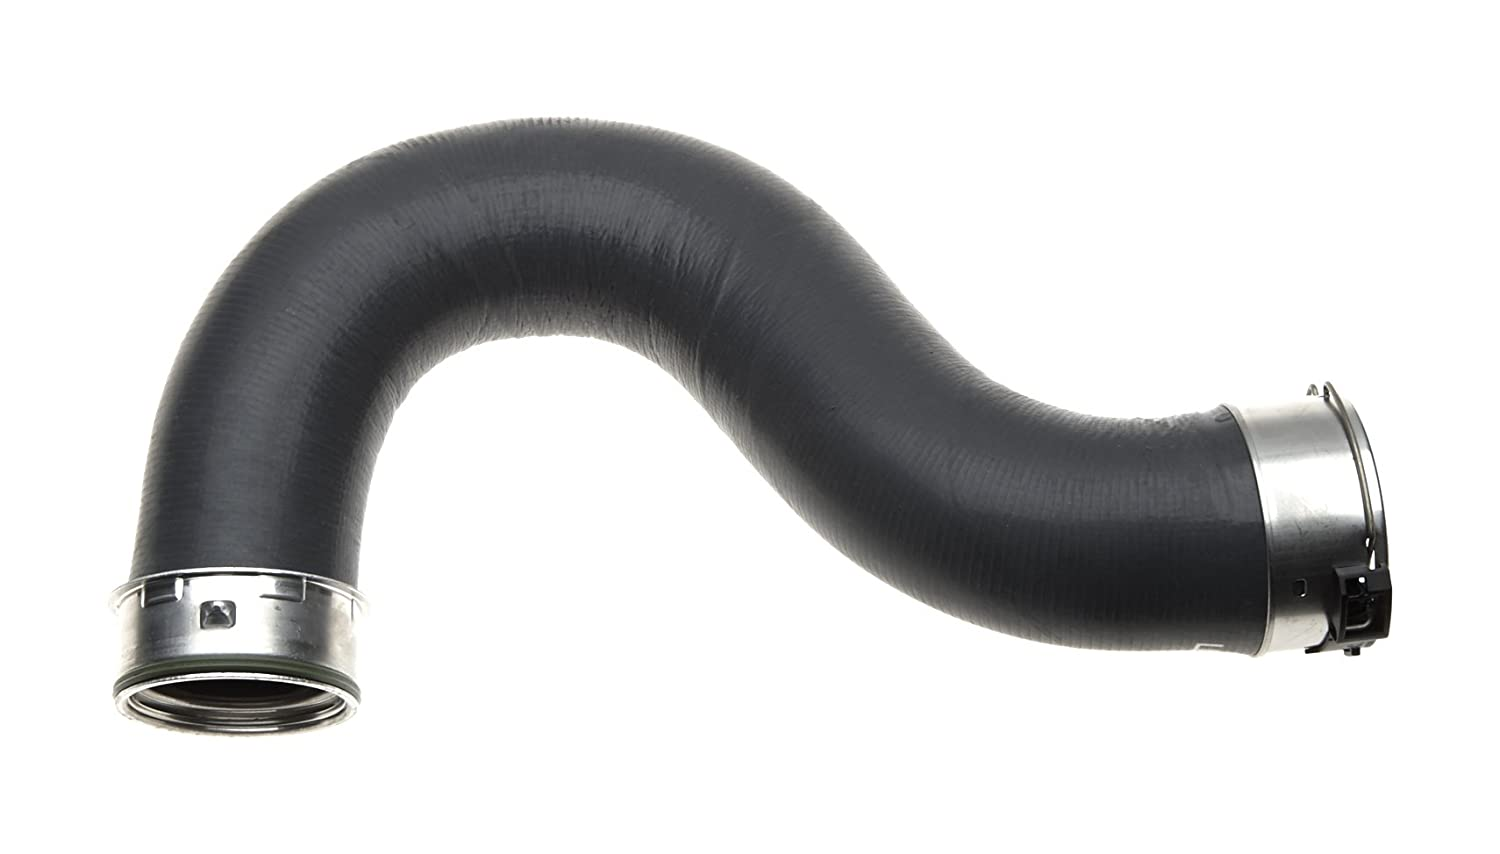 ACDelco 26269 Professional Turbocharger Hose